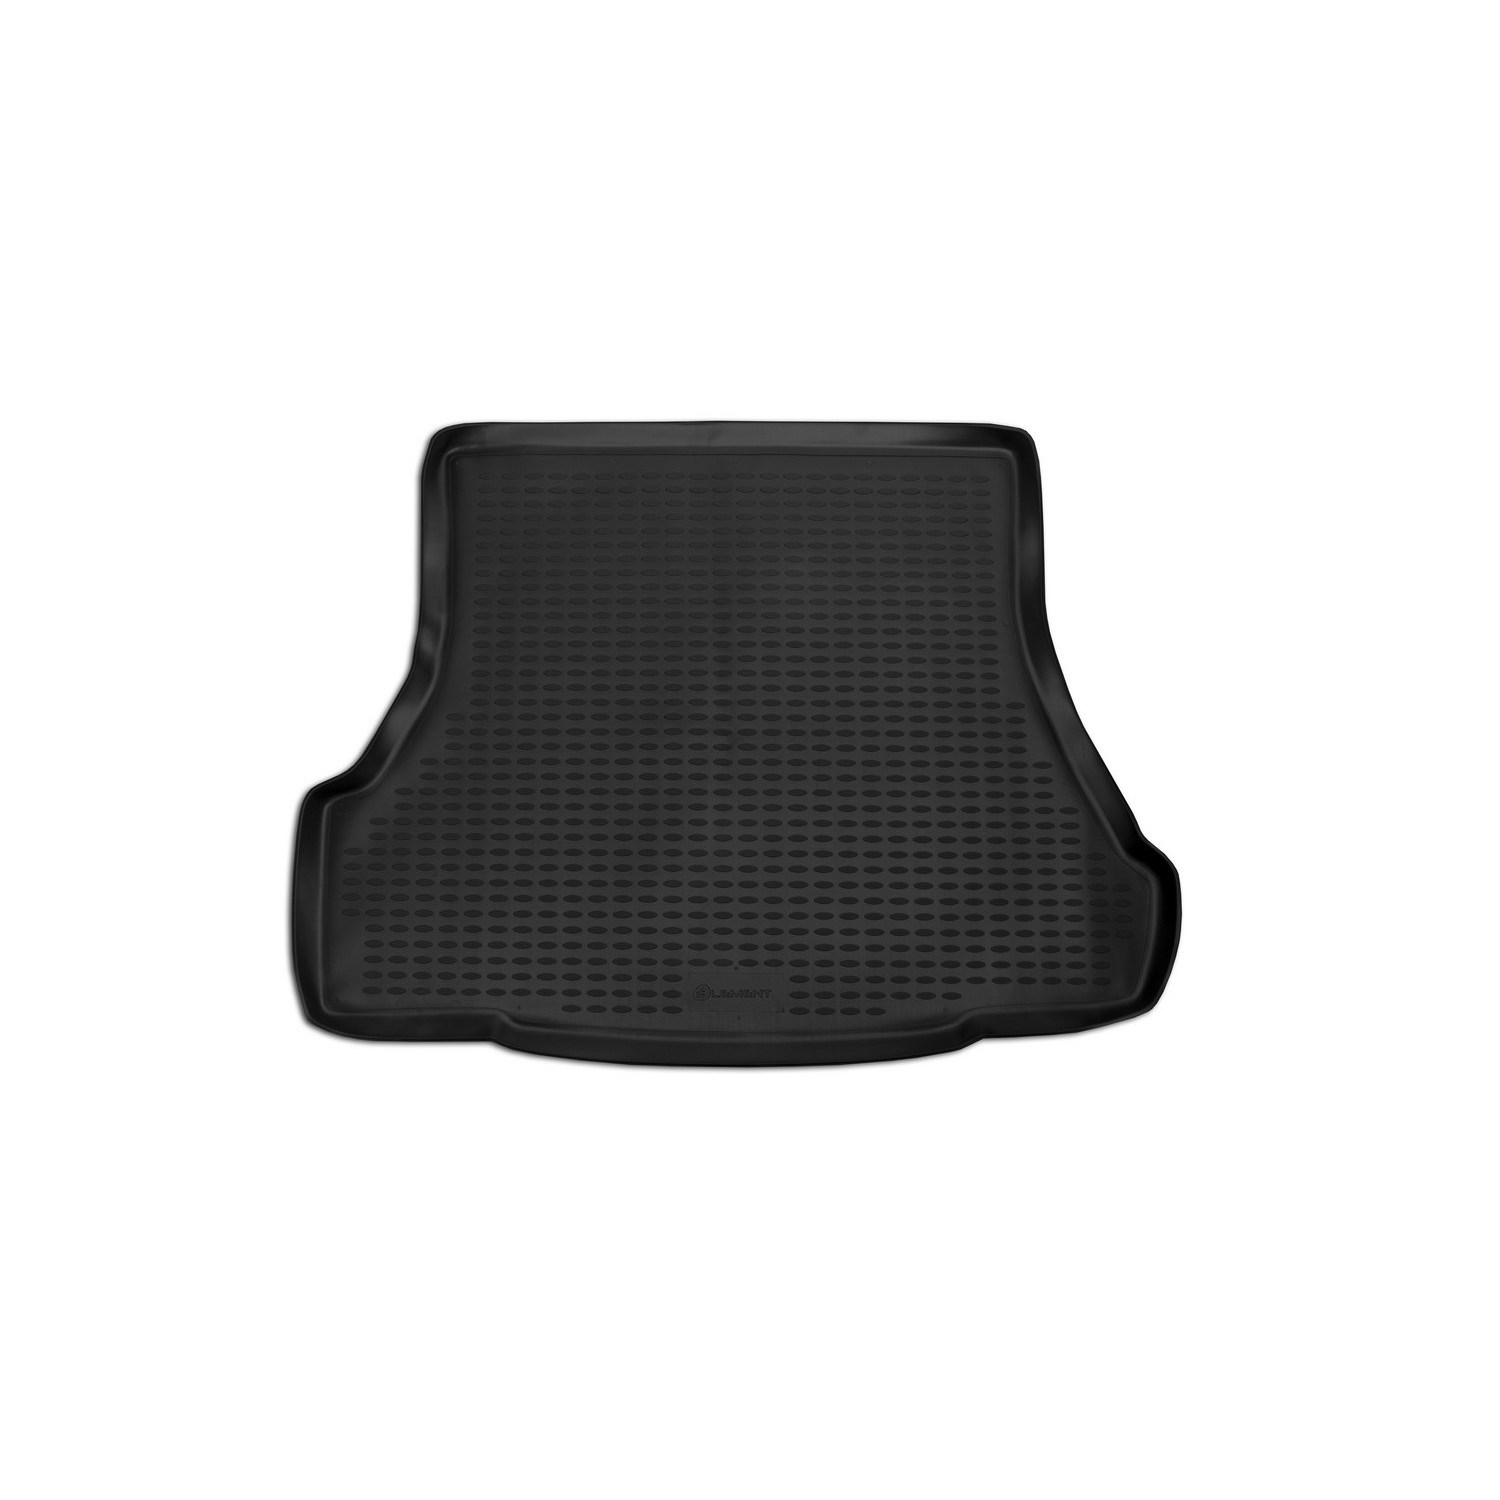 Trunk Mat For FORD Mondeo 2000-2007, Gray,. NLC.16.05.B10